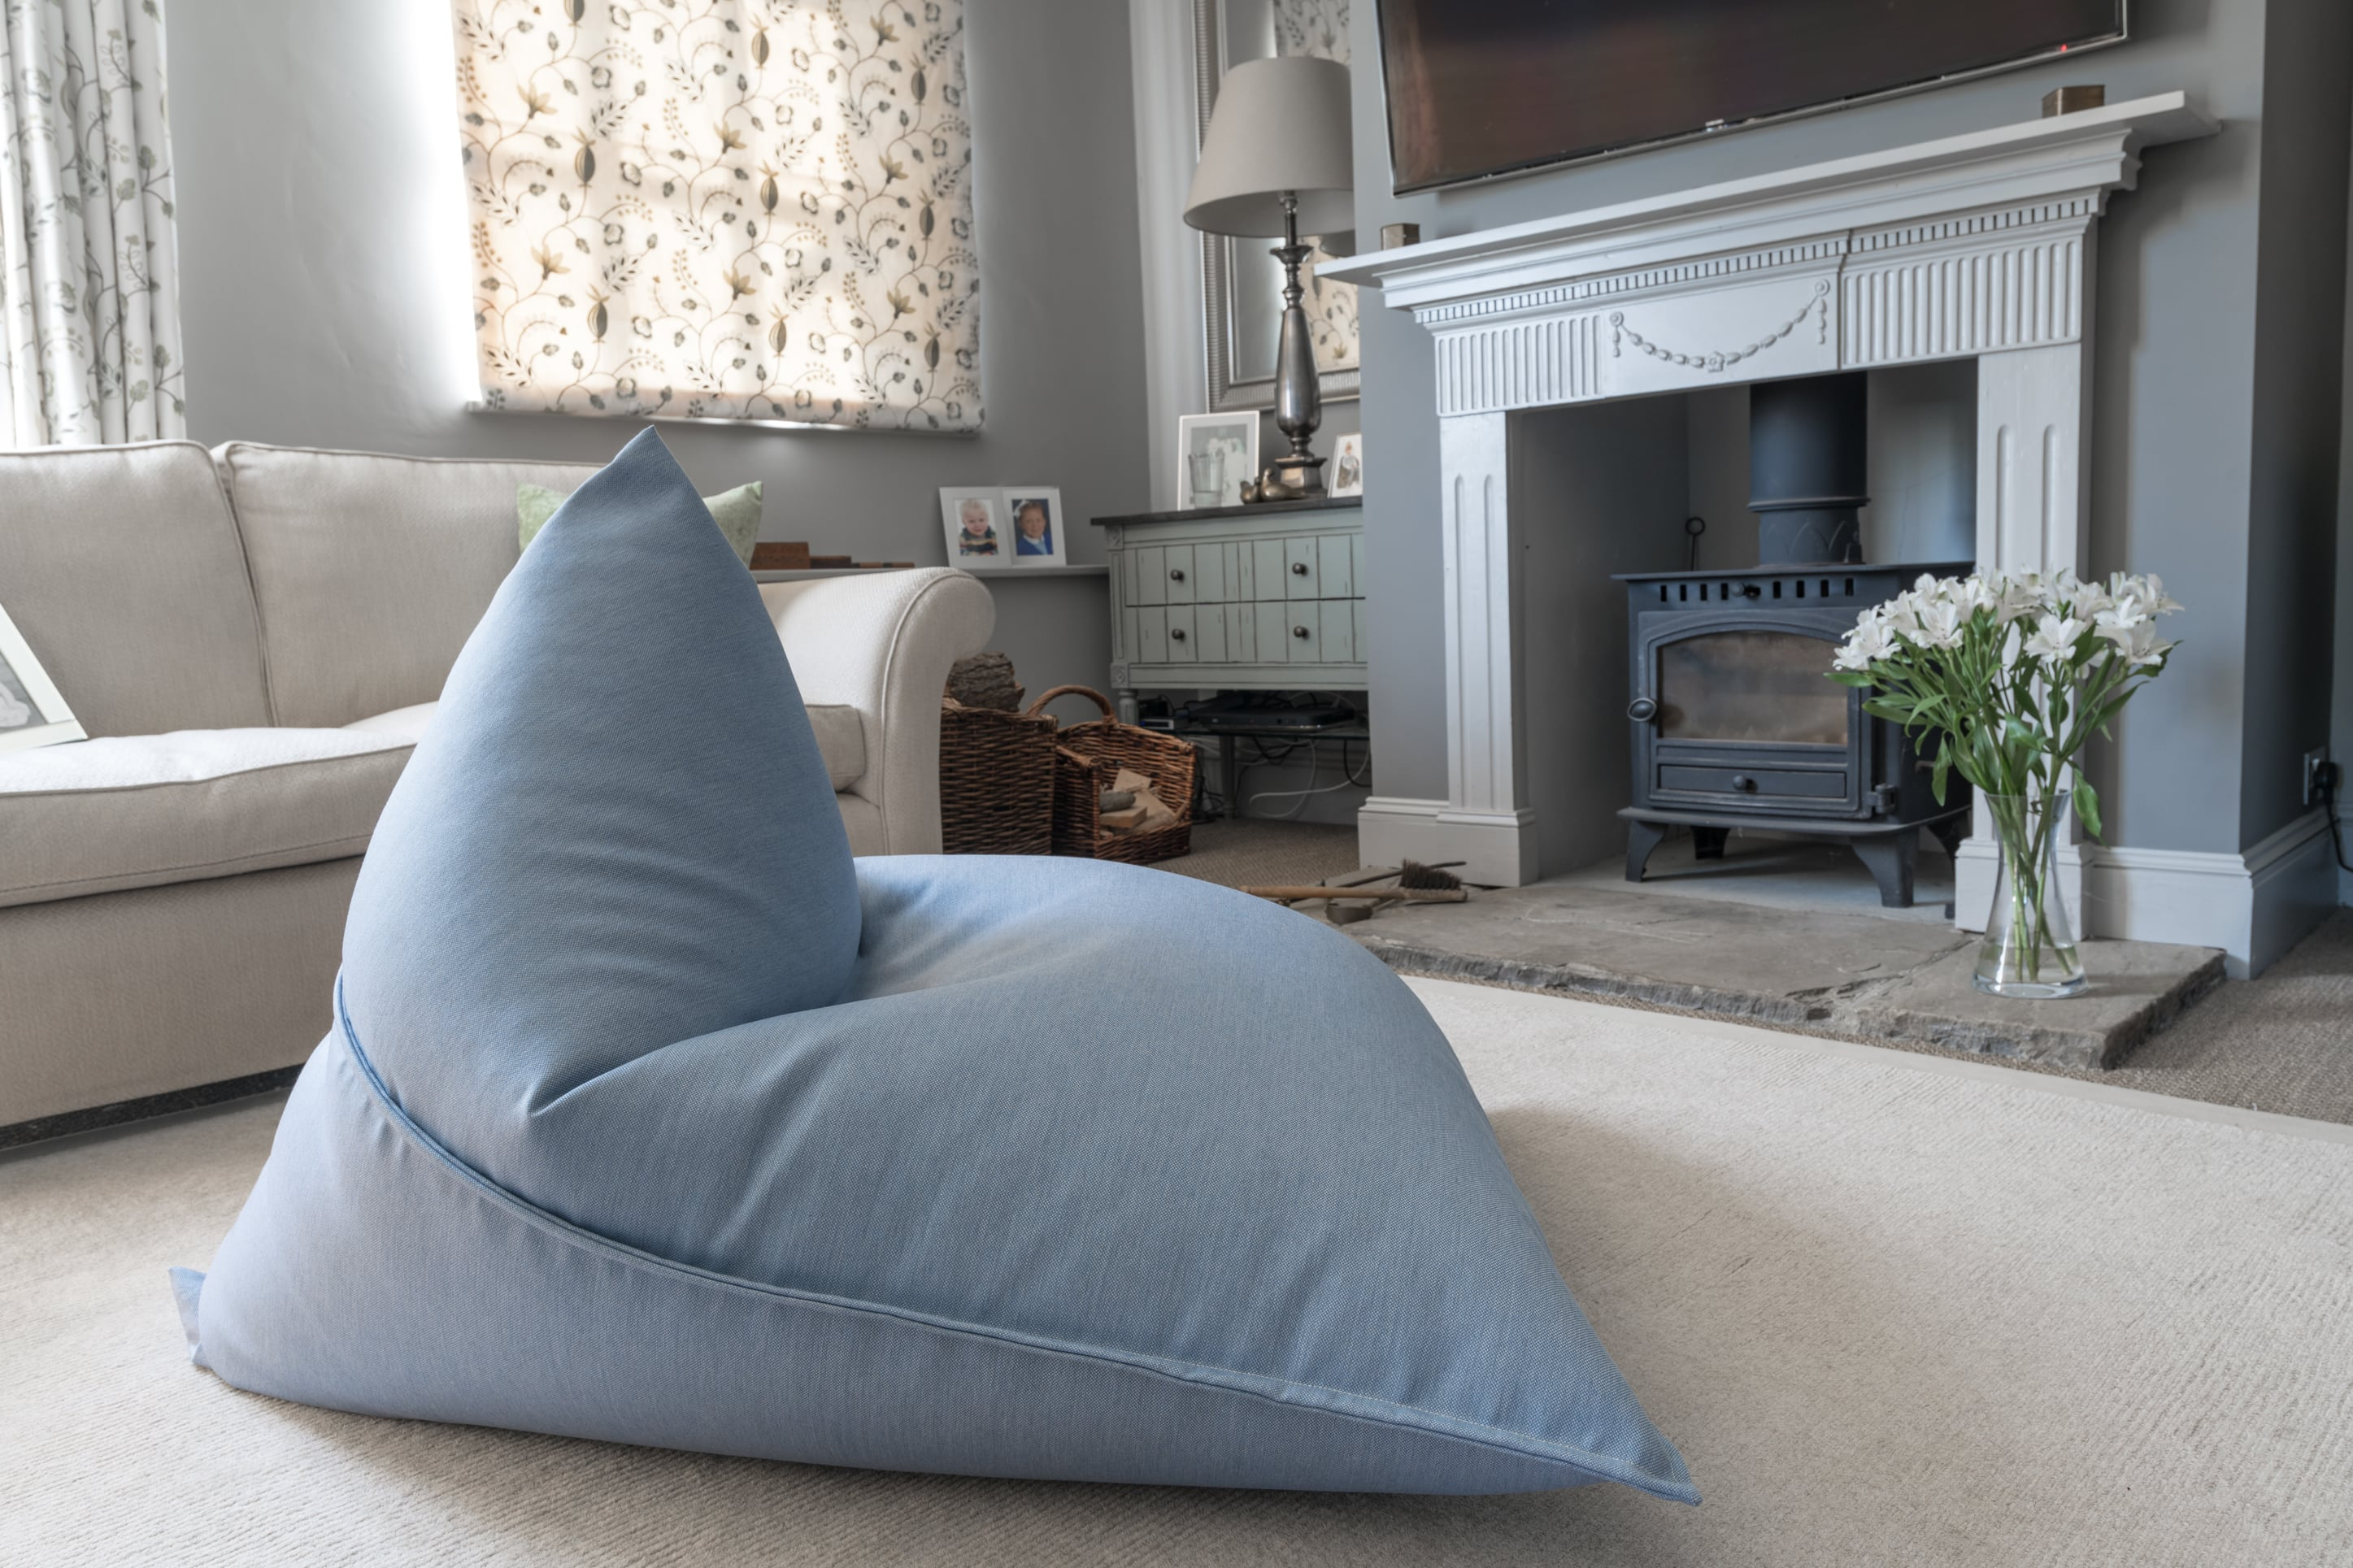 Adult Bean Bag Lounger in Ice Blue